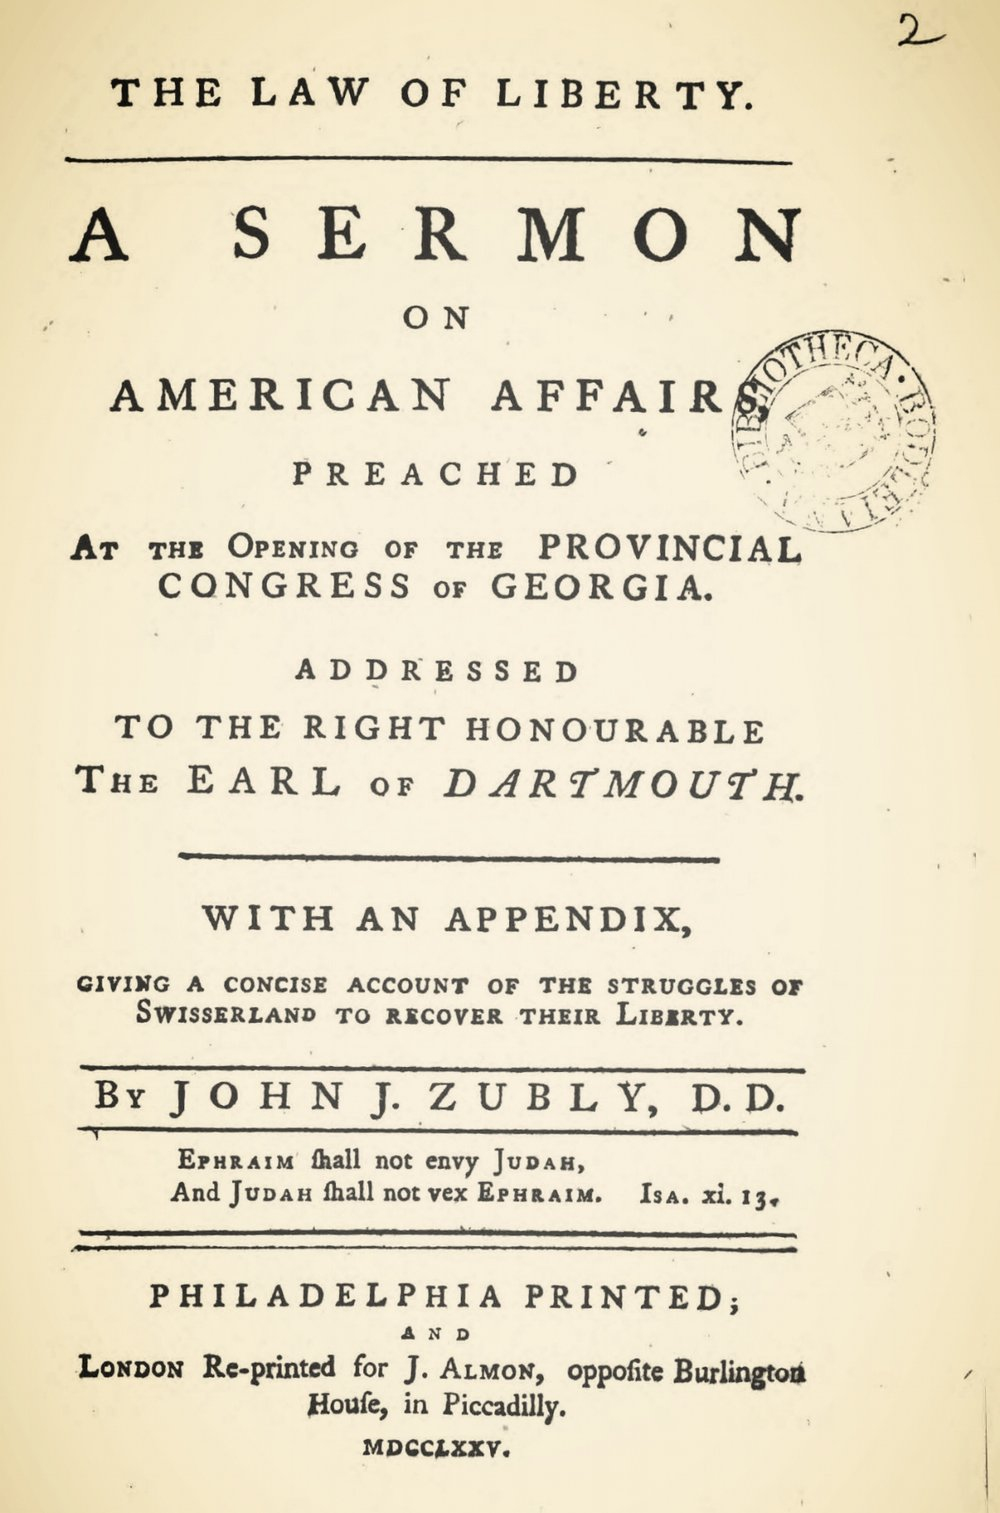 Zubly, John Joachim, The Law of Liberty Title Page.jpg